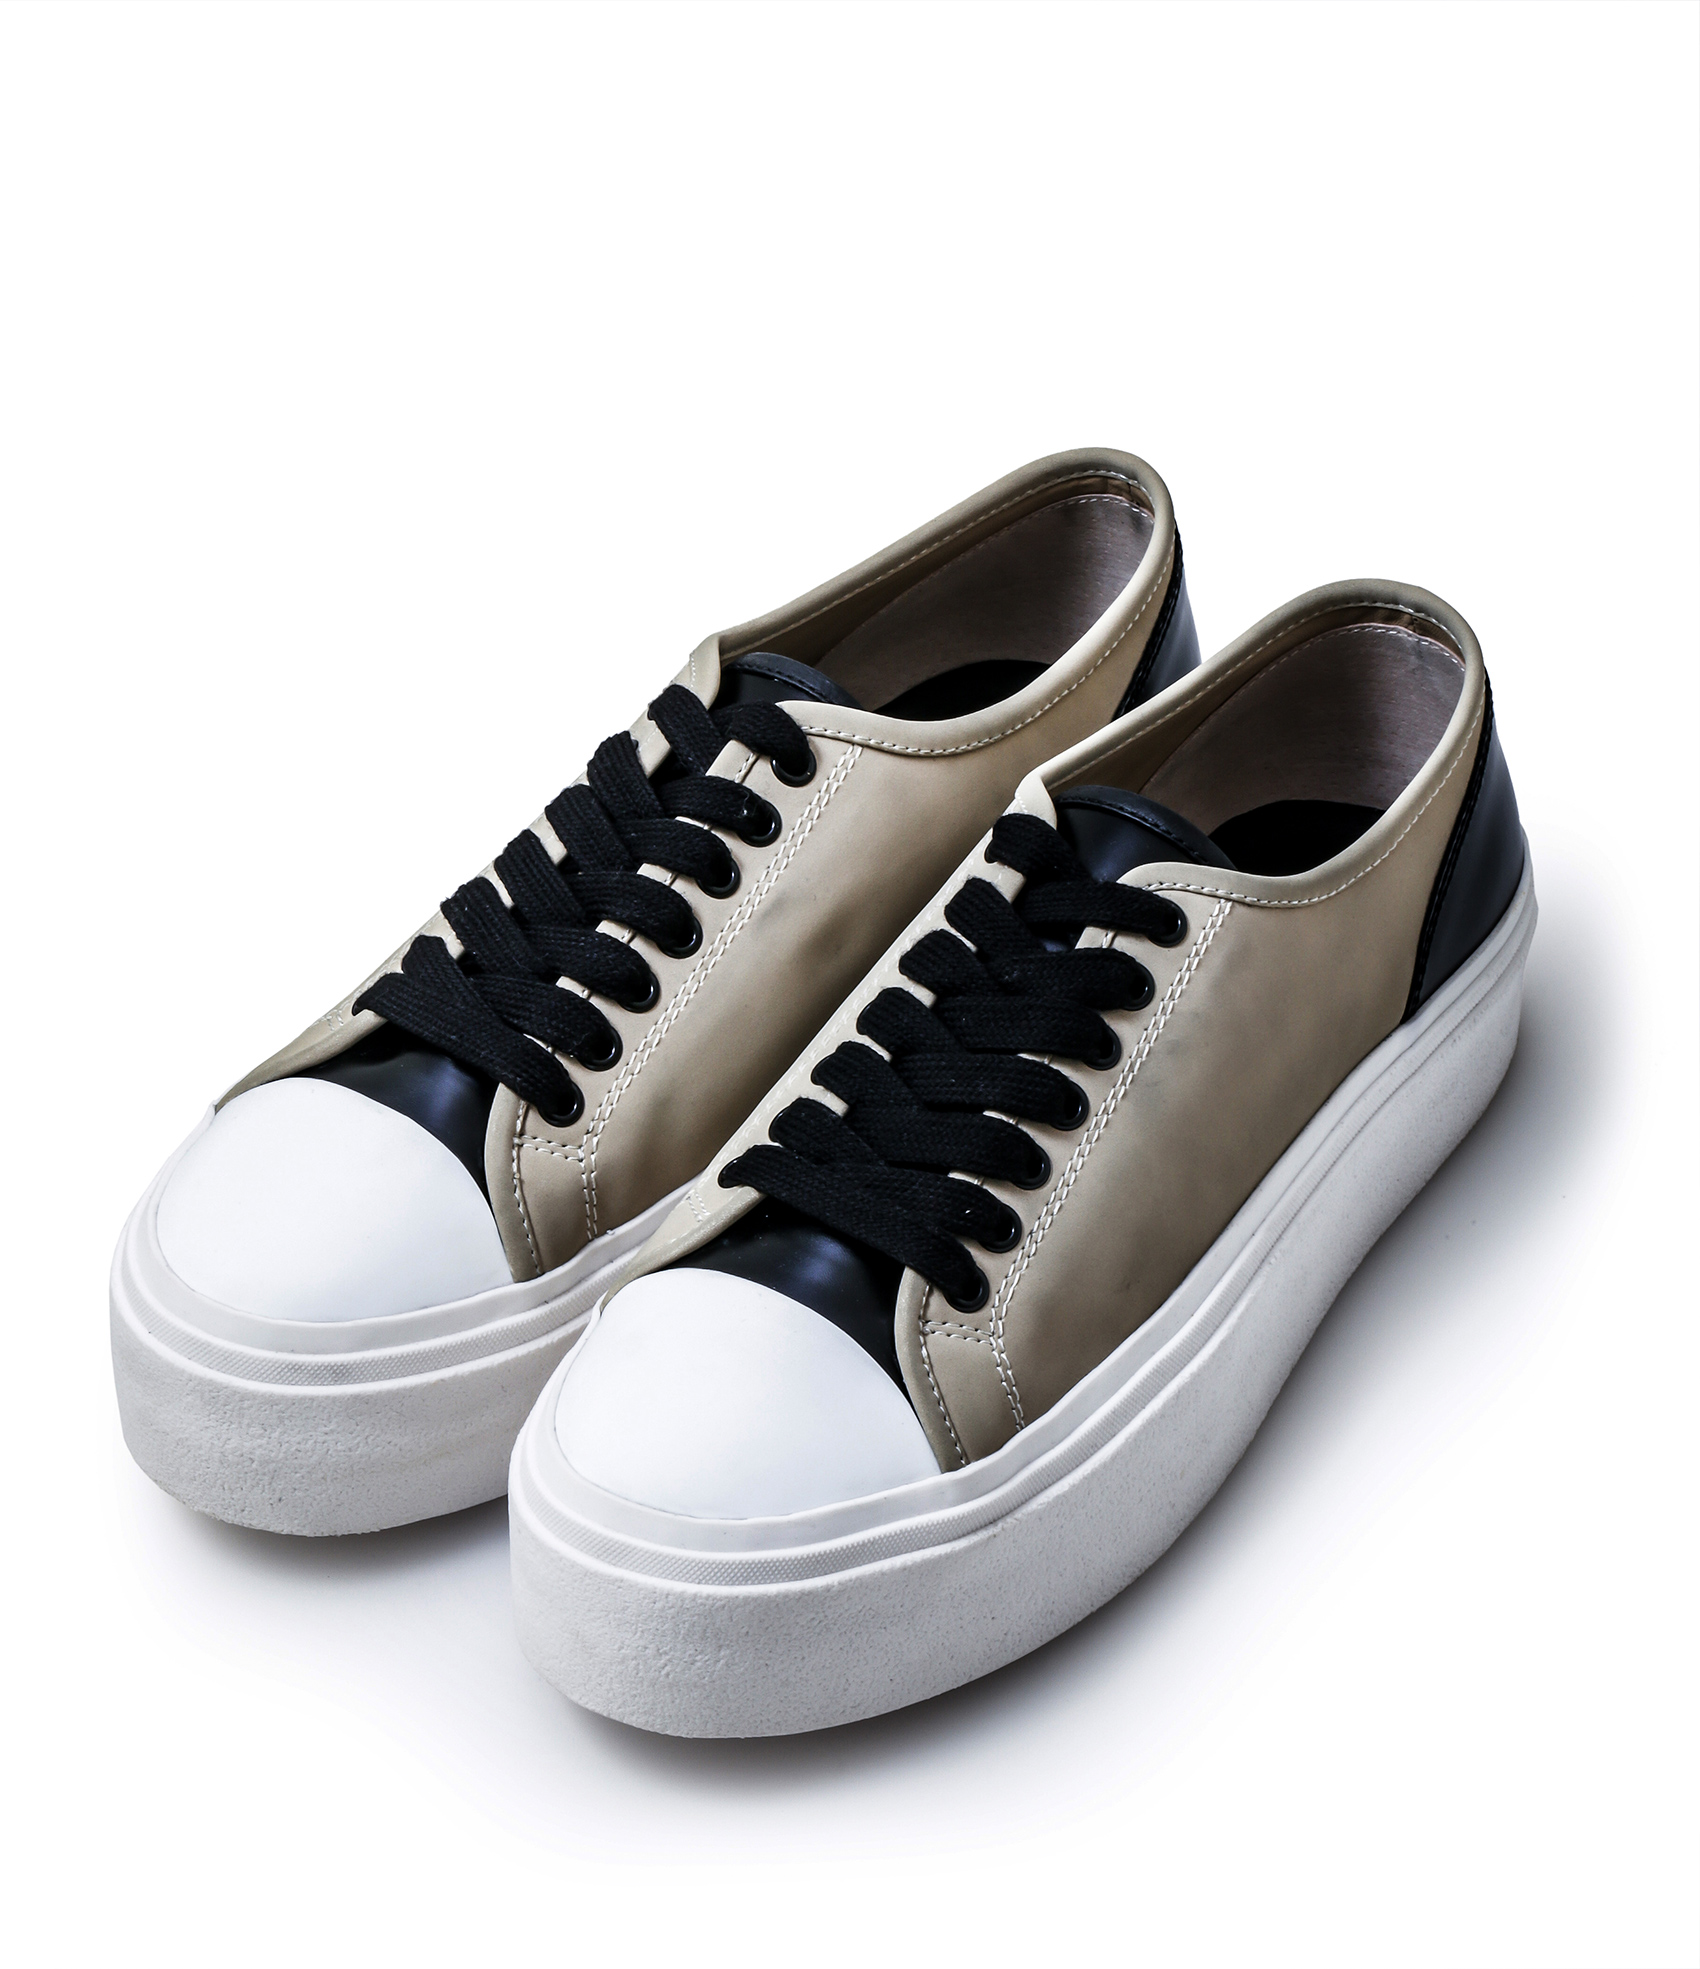 LEATHER SNEAKERS / SUEDE BAIGE